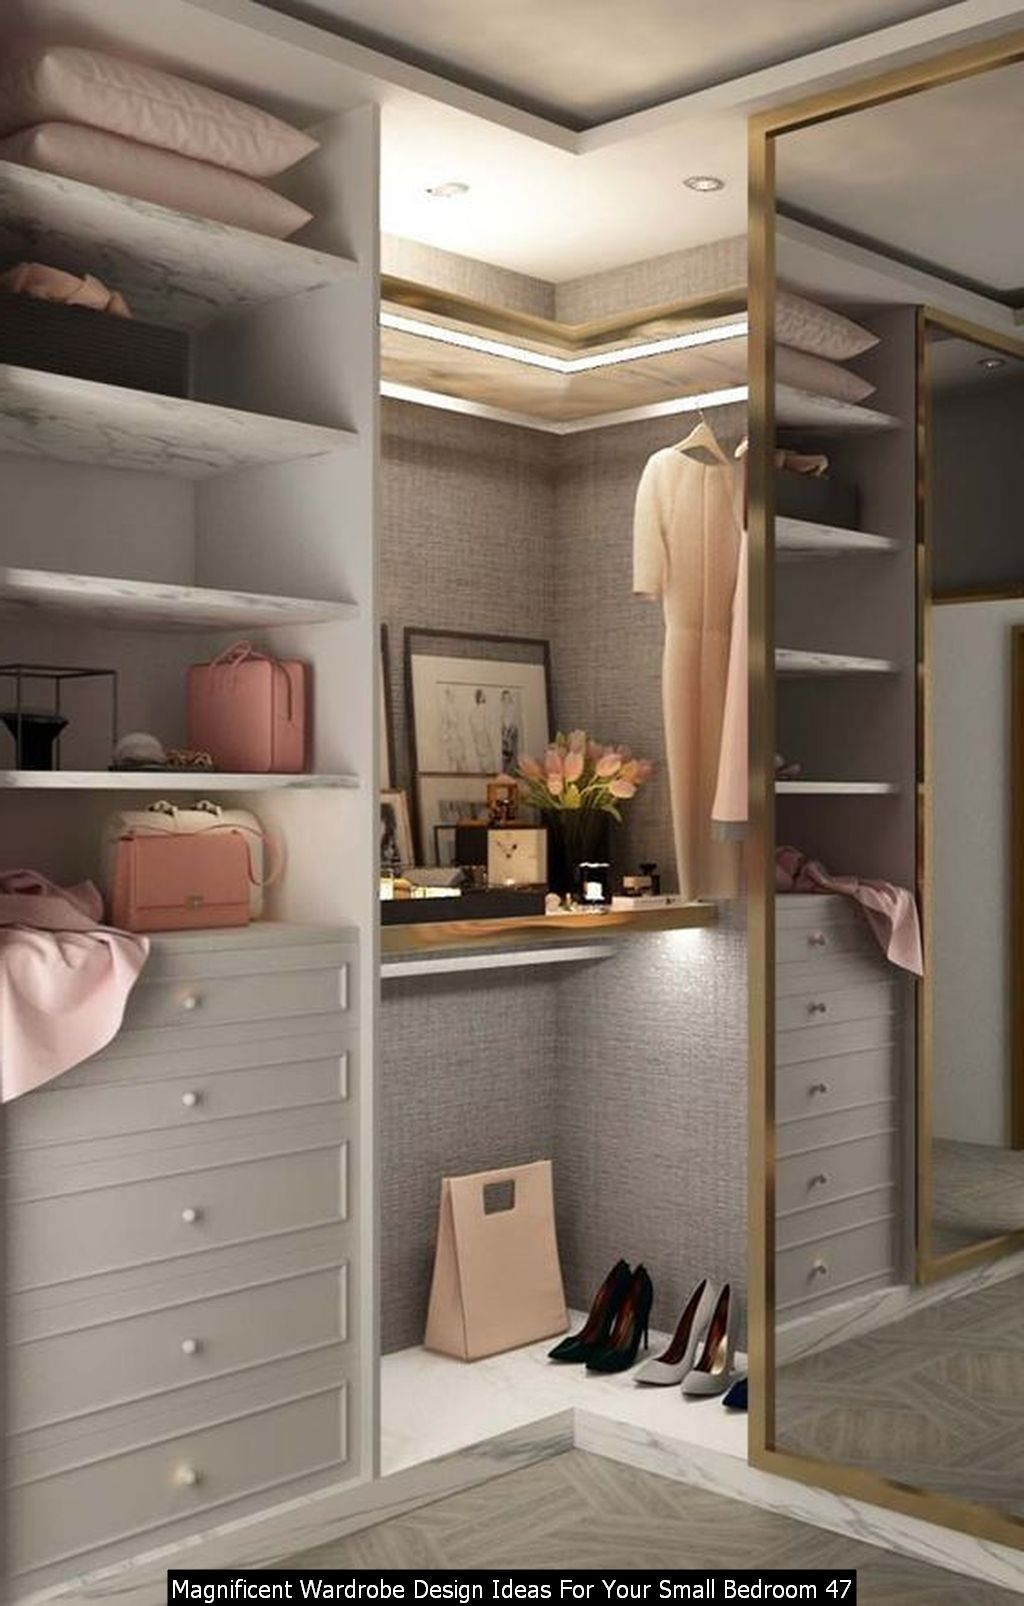 Magnificent Wardrobe Design Ideas For Your Small Bedroom 47